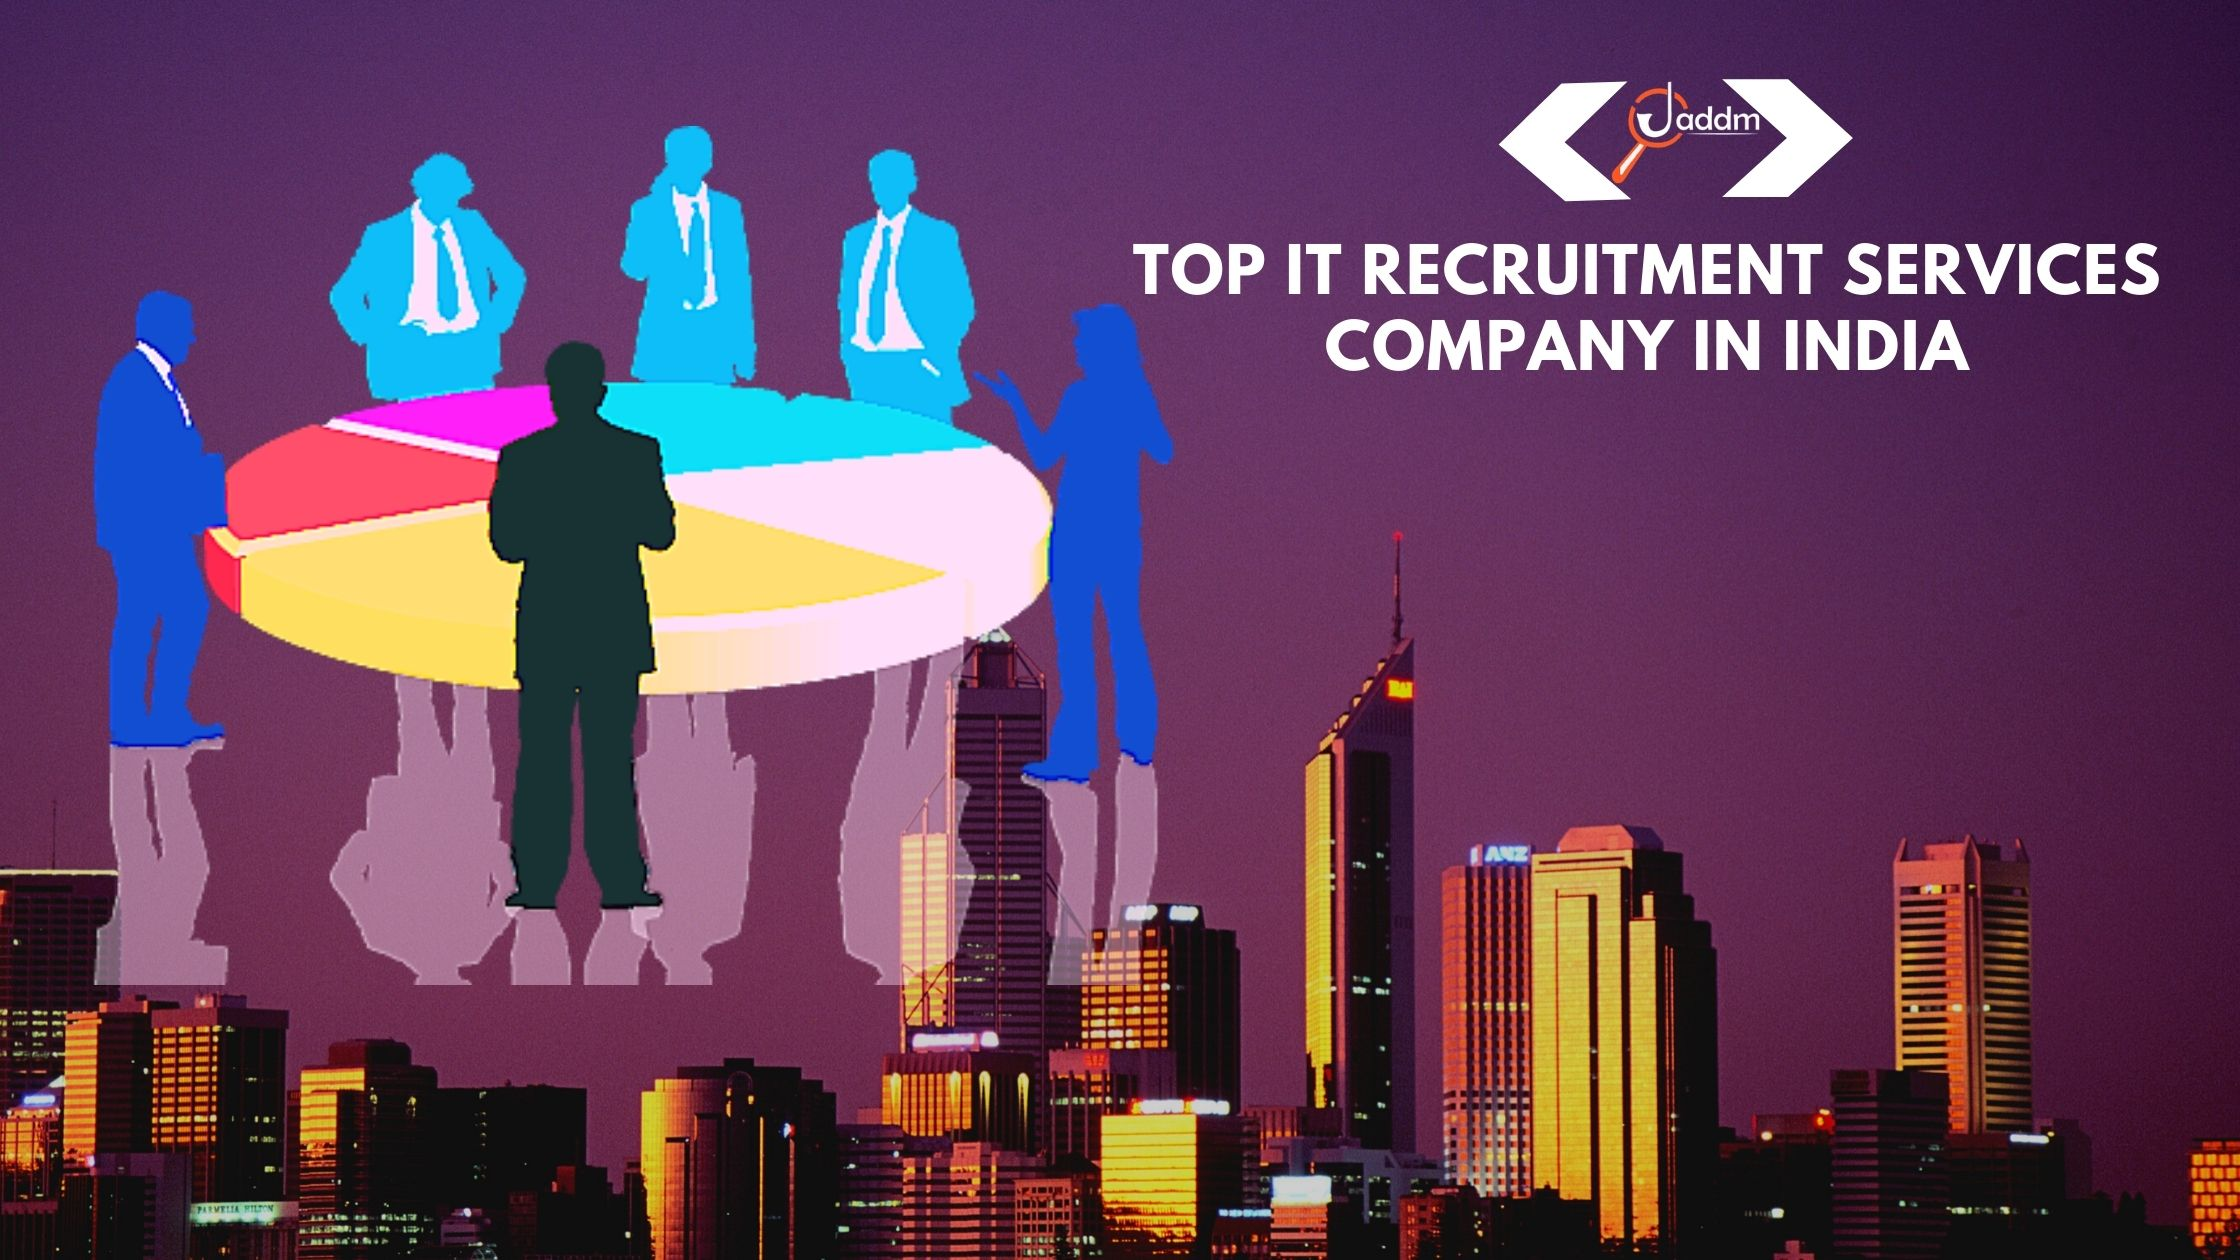 Top IT Recruitment Services Company in India 2021- Jaddm Recruitment Services